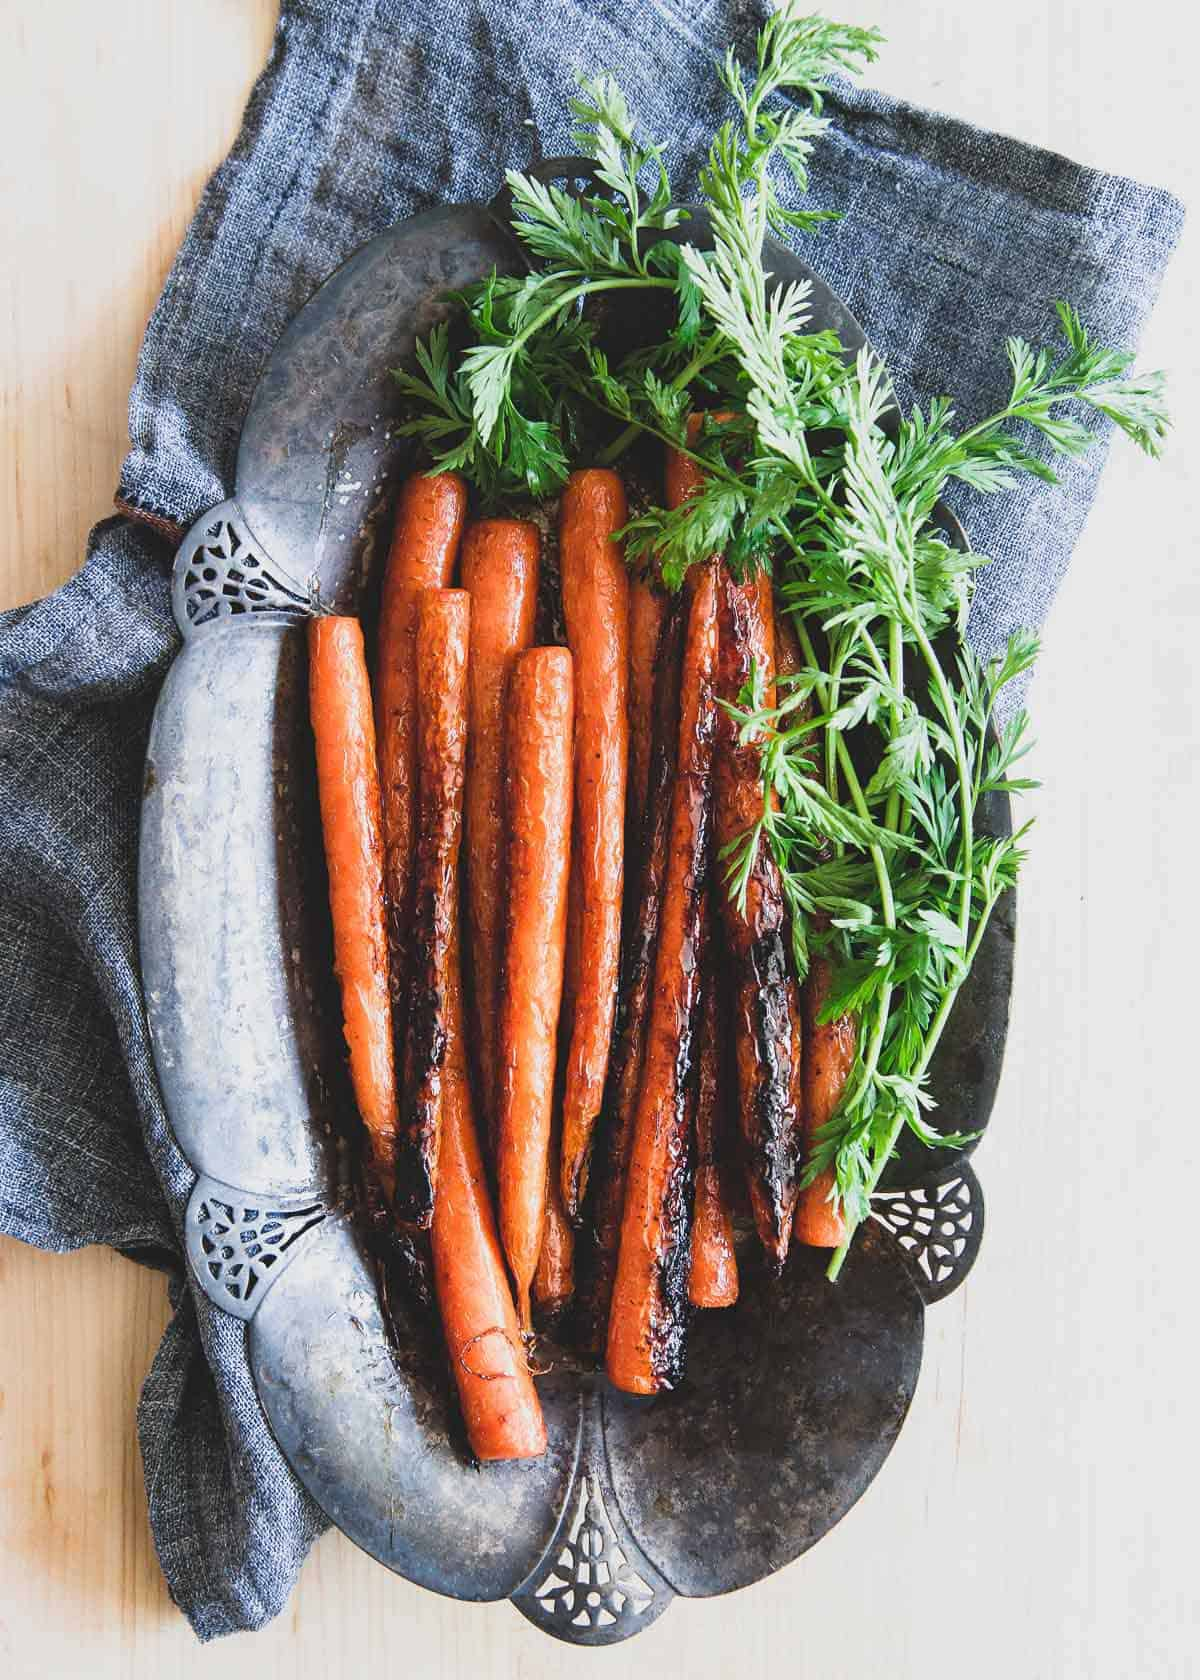 These caramelized candied carrots with brown sugar and butter taste just like candy and are a great tasty side dish to any dinner.